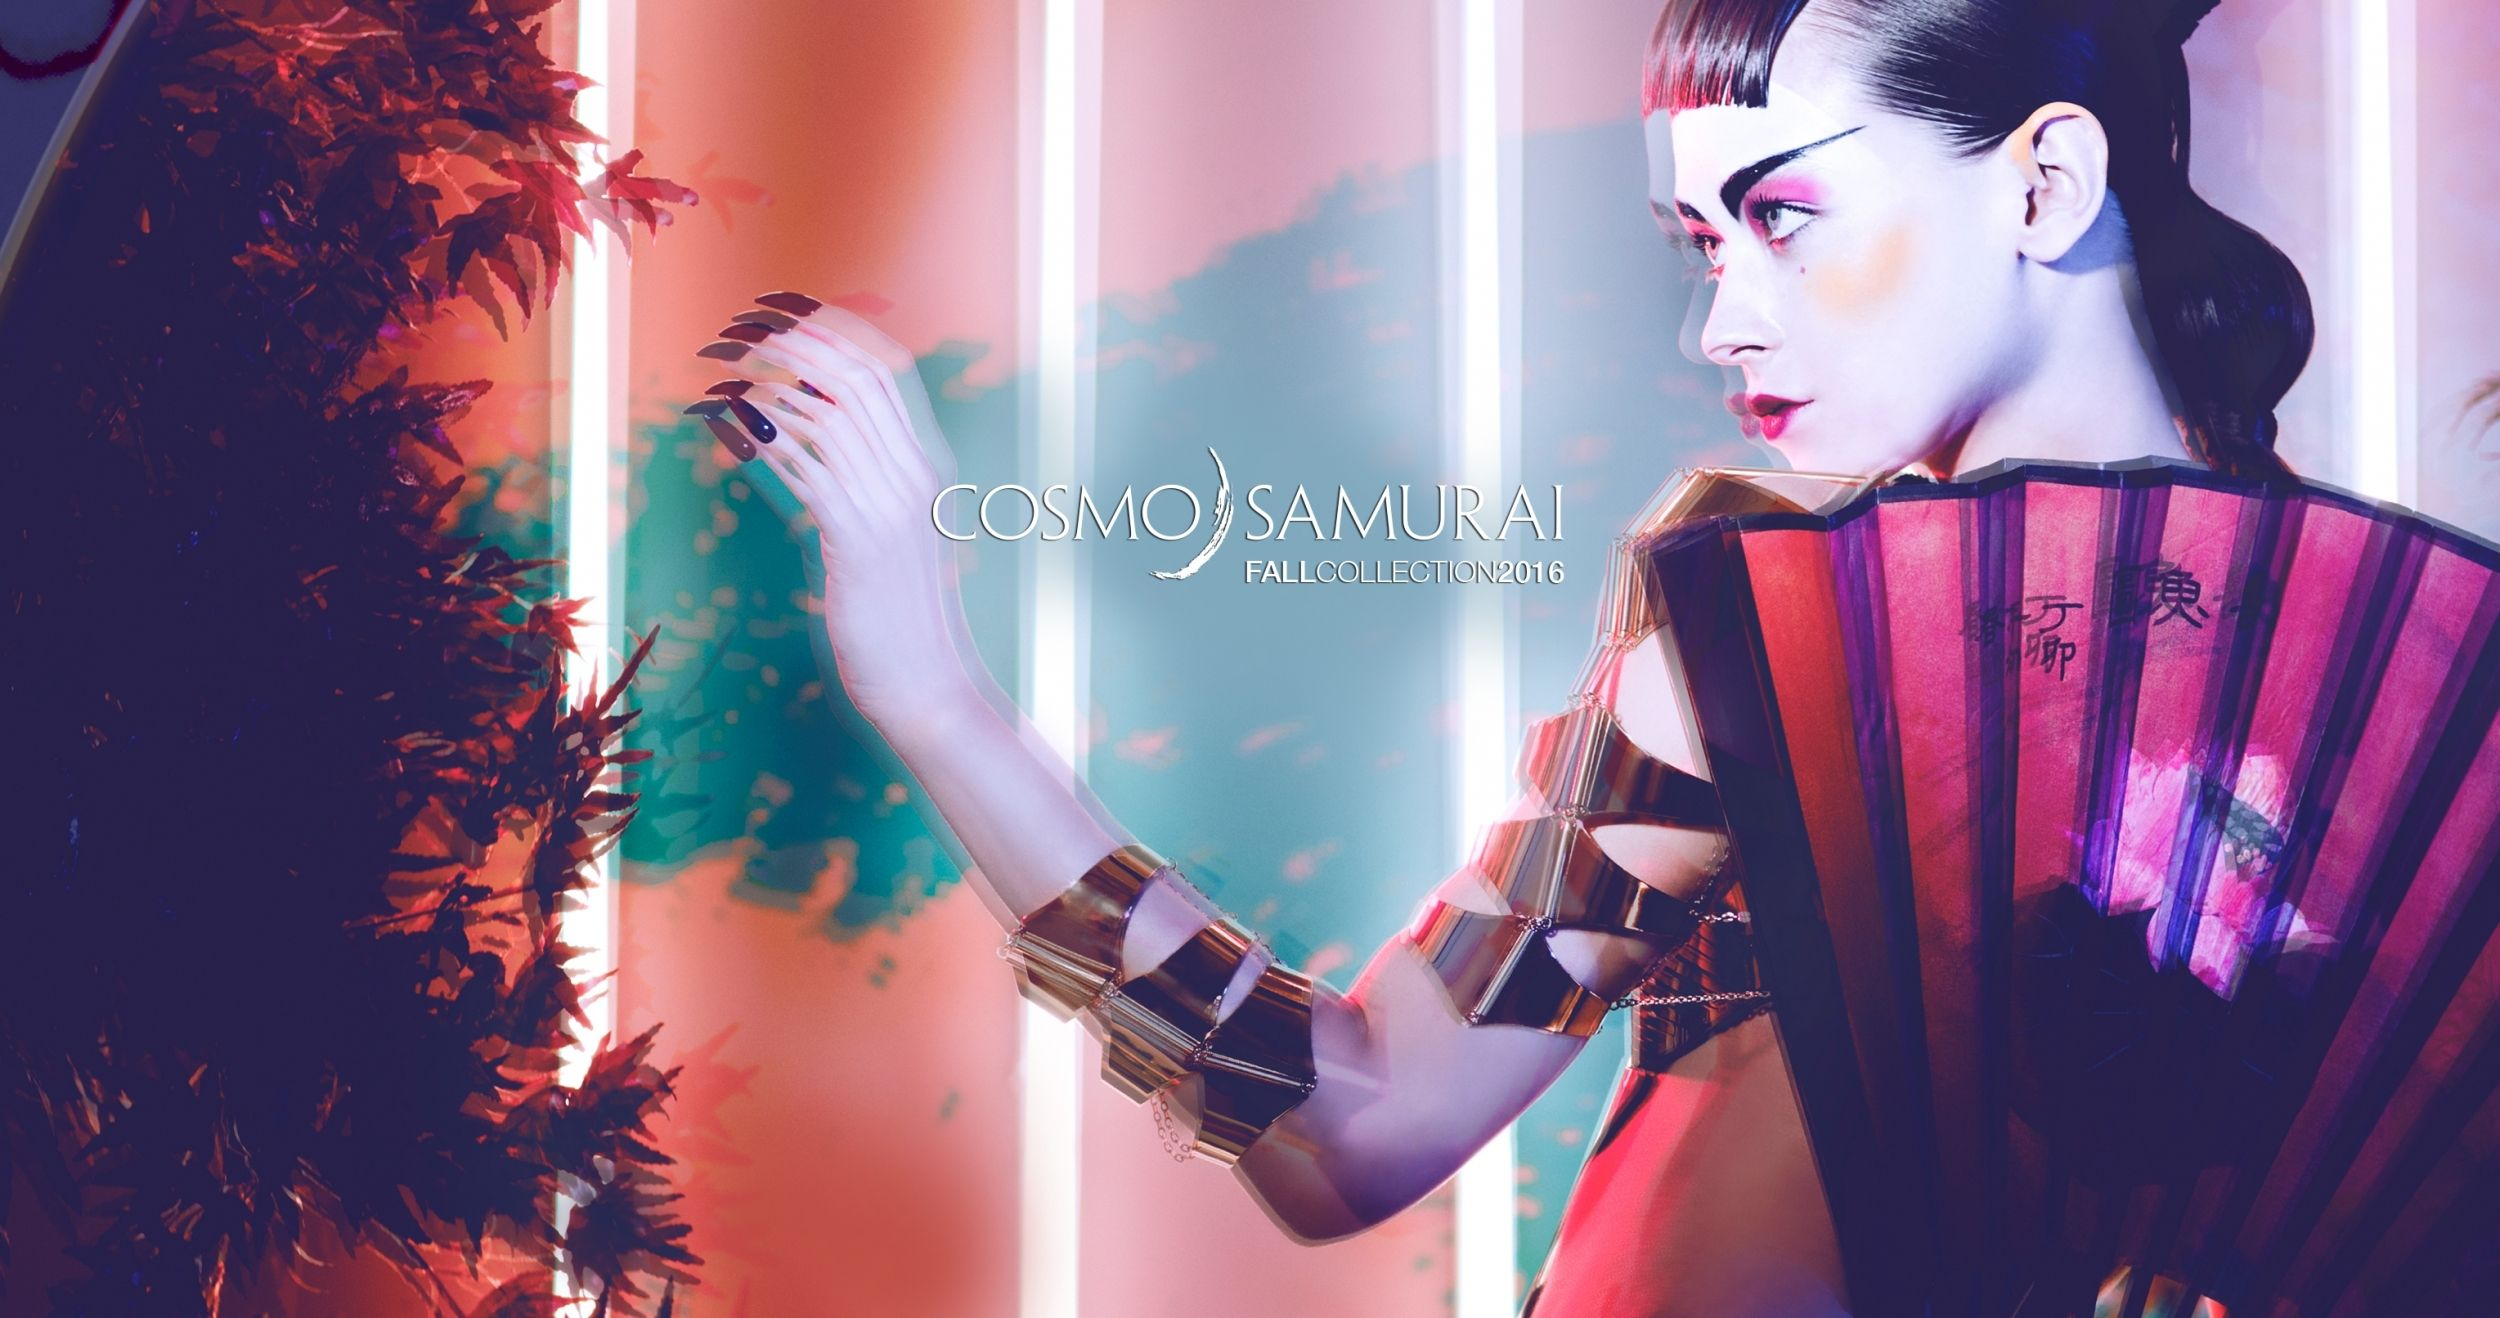 COSMO SAMURAI fall collection